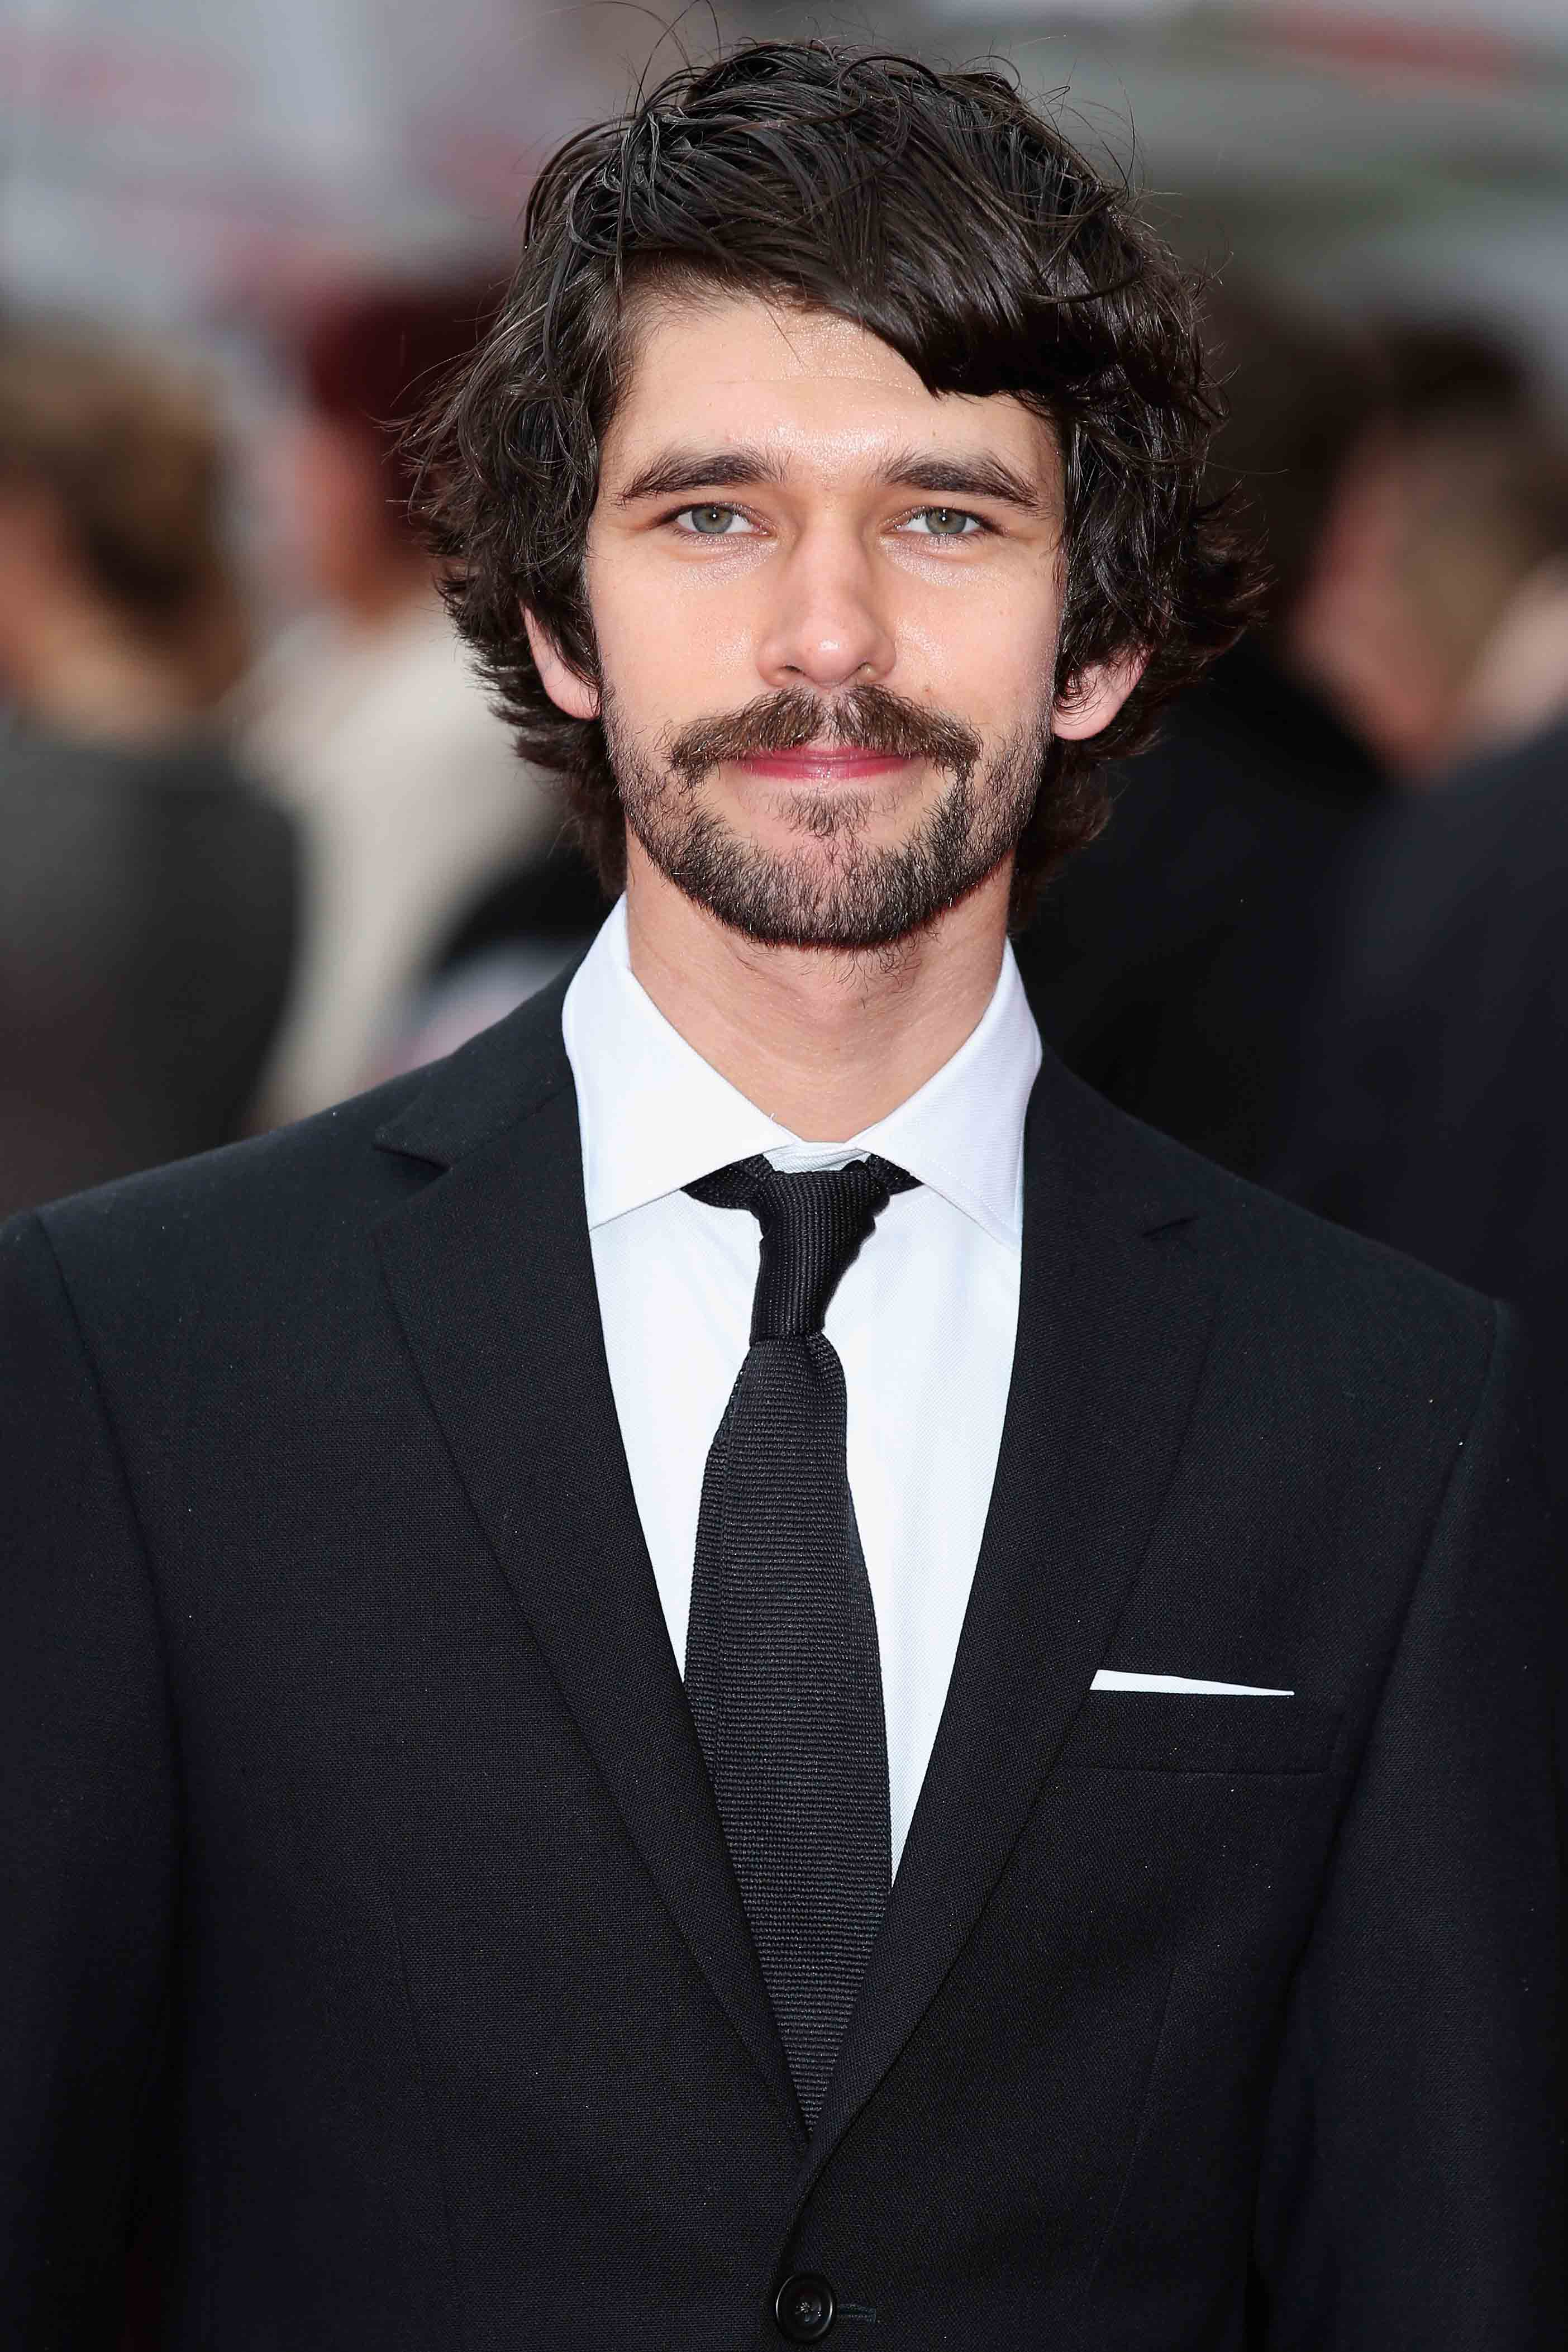 Ben whishaw latest news gossip and film releases